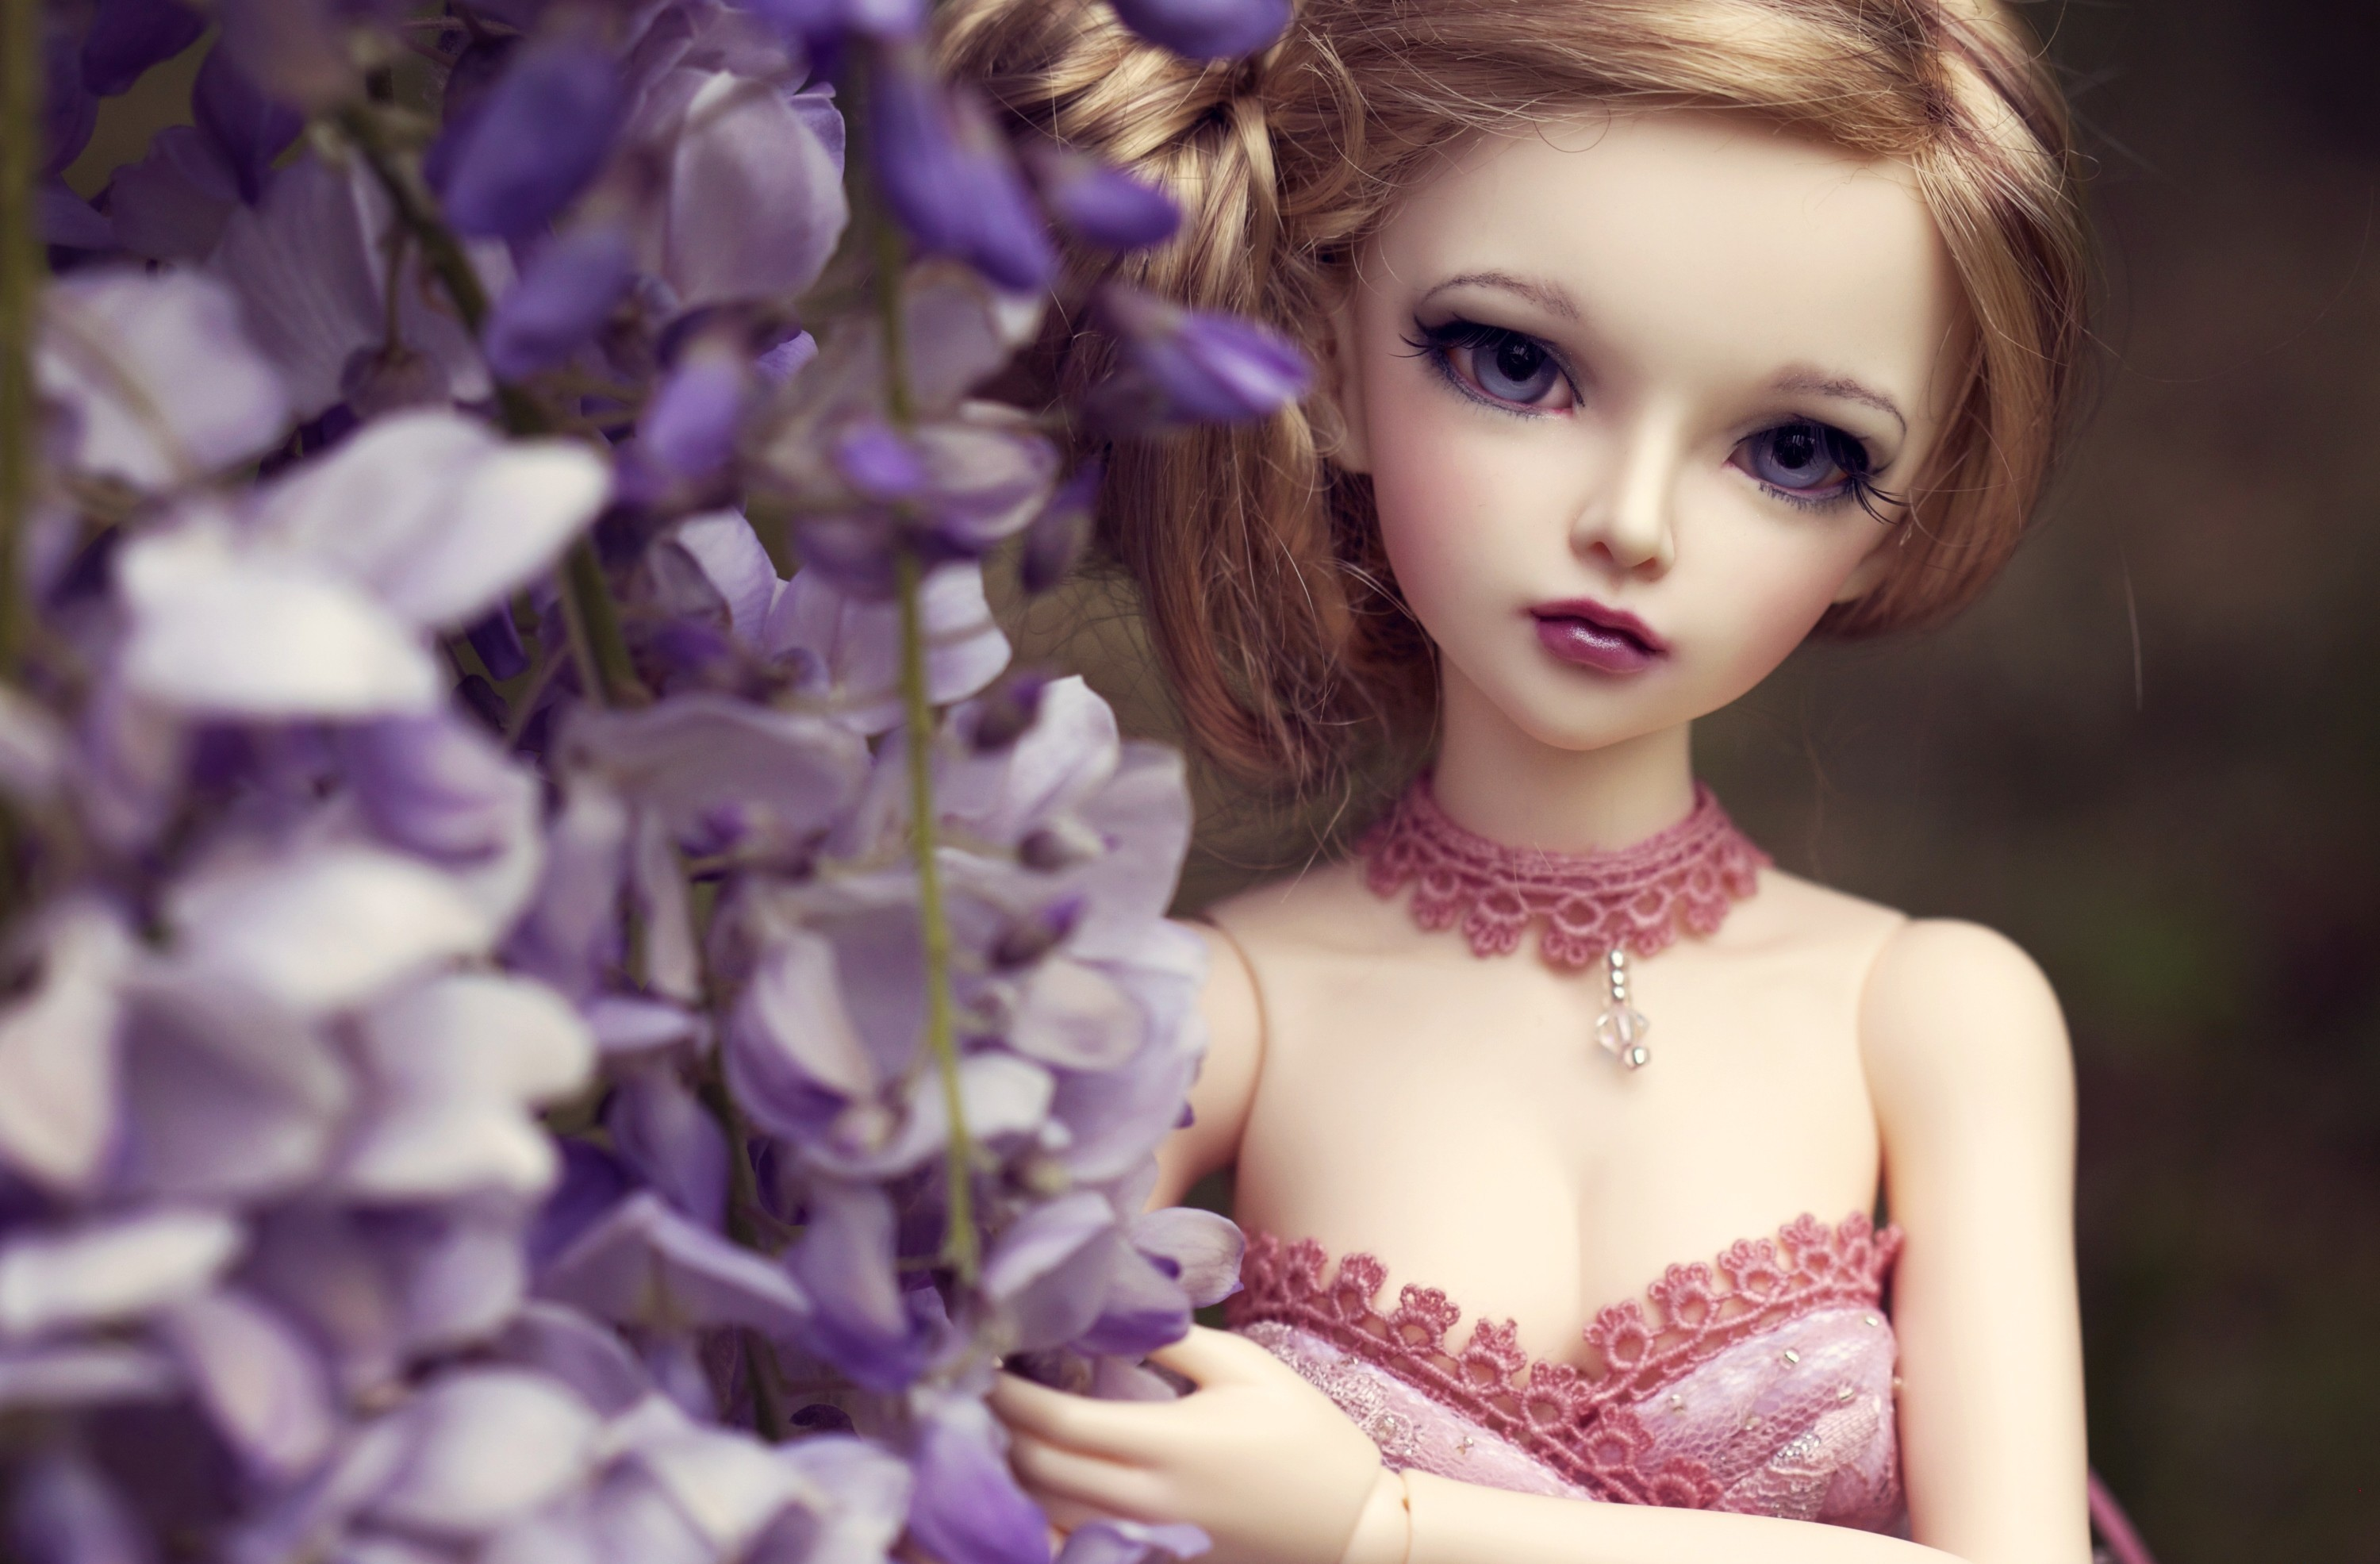 Best 20+ Doll images hd ideas on Pinterest | Best rated foundation, Revlon  foundation and Airbrush makeup prices